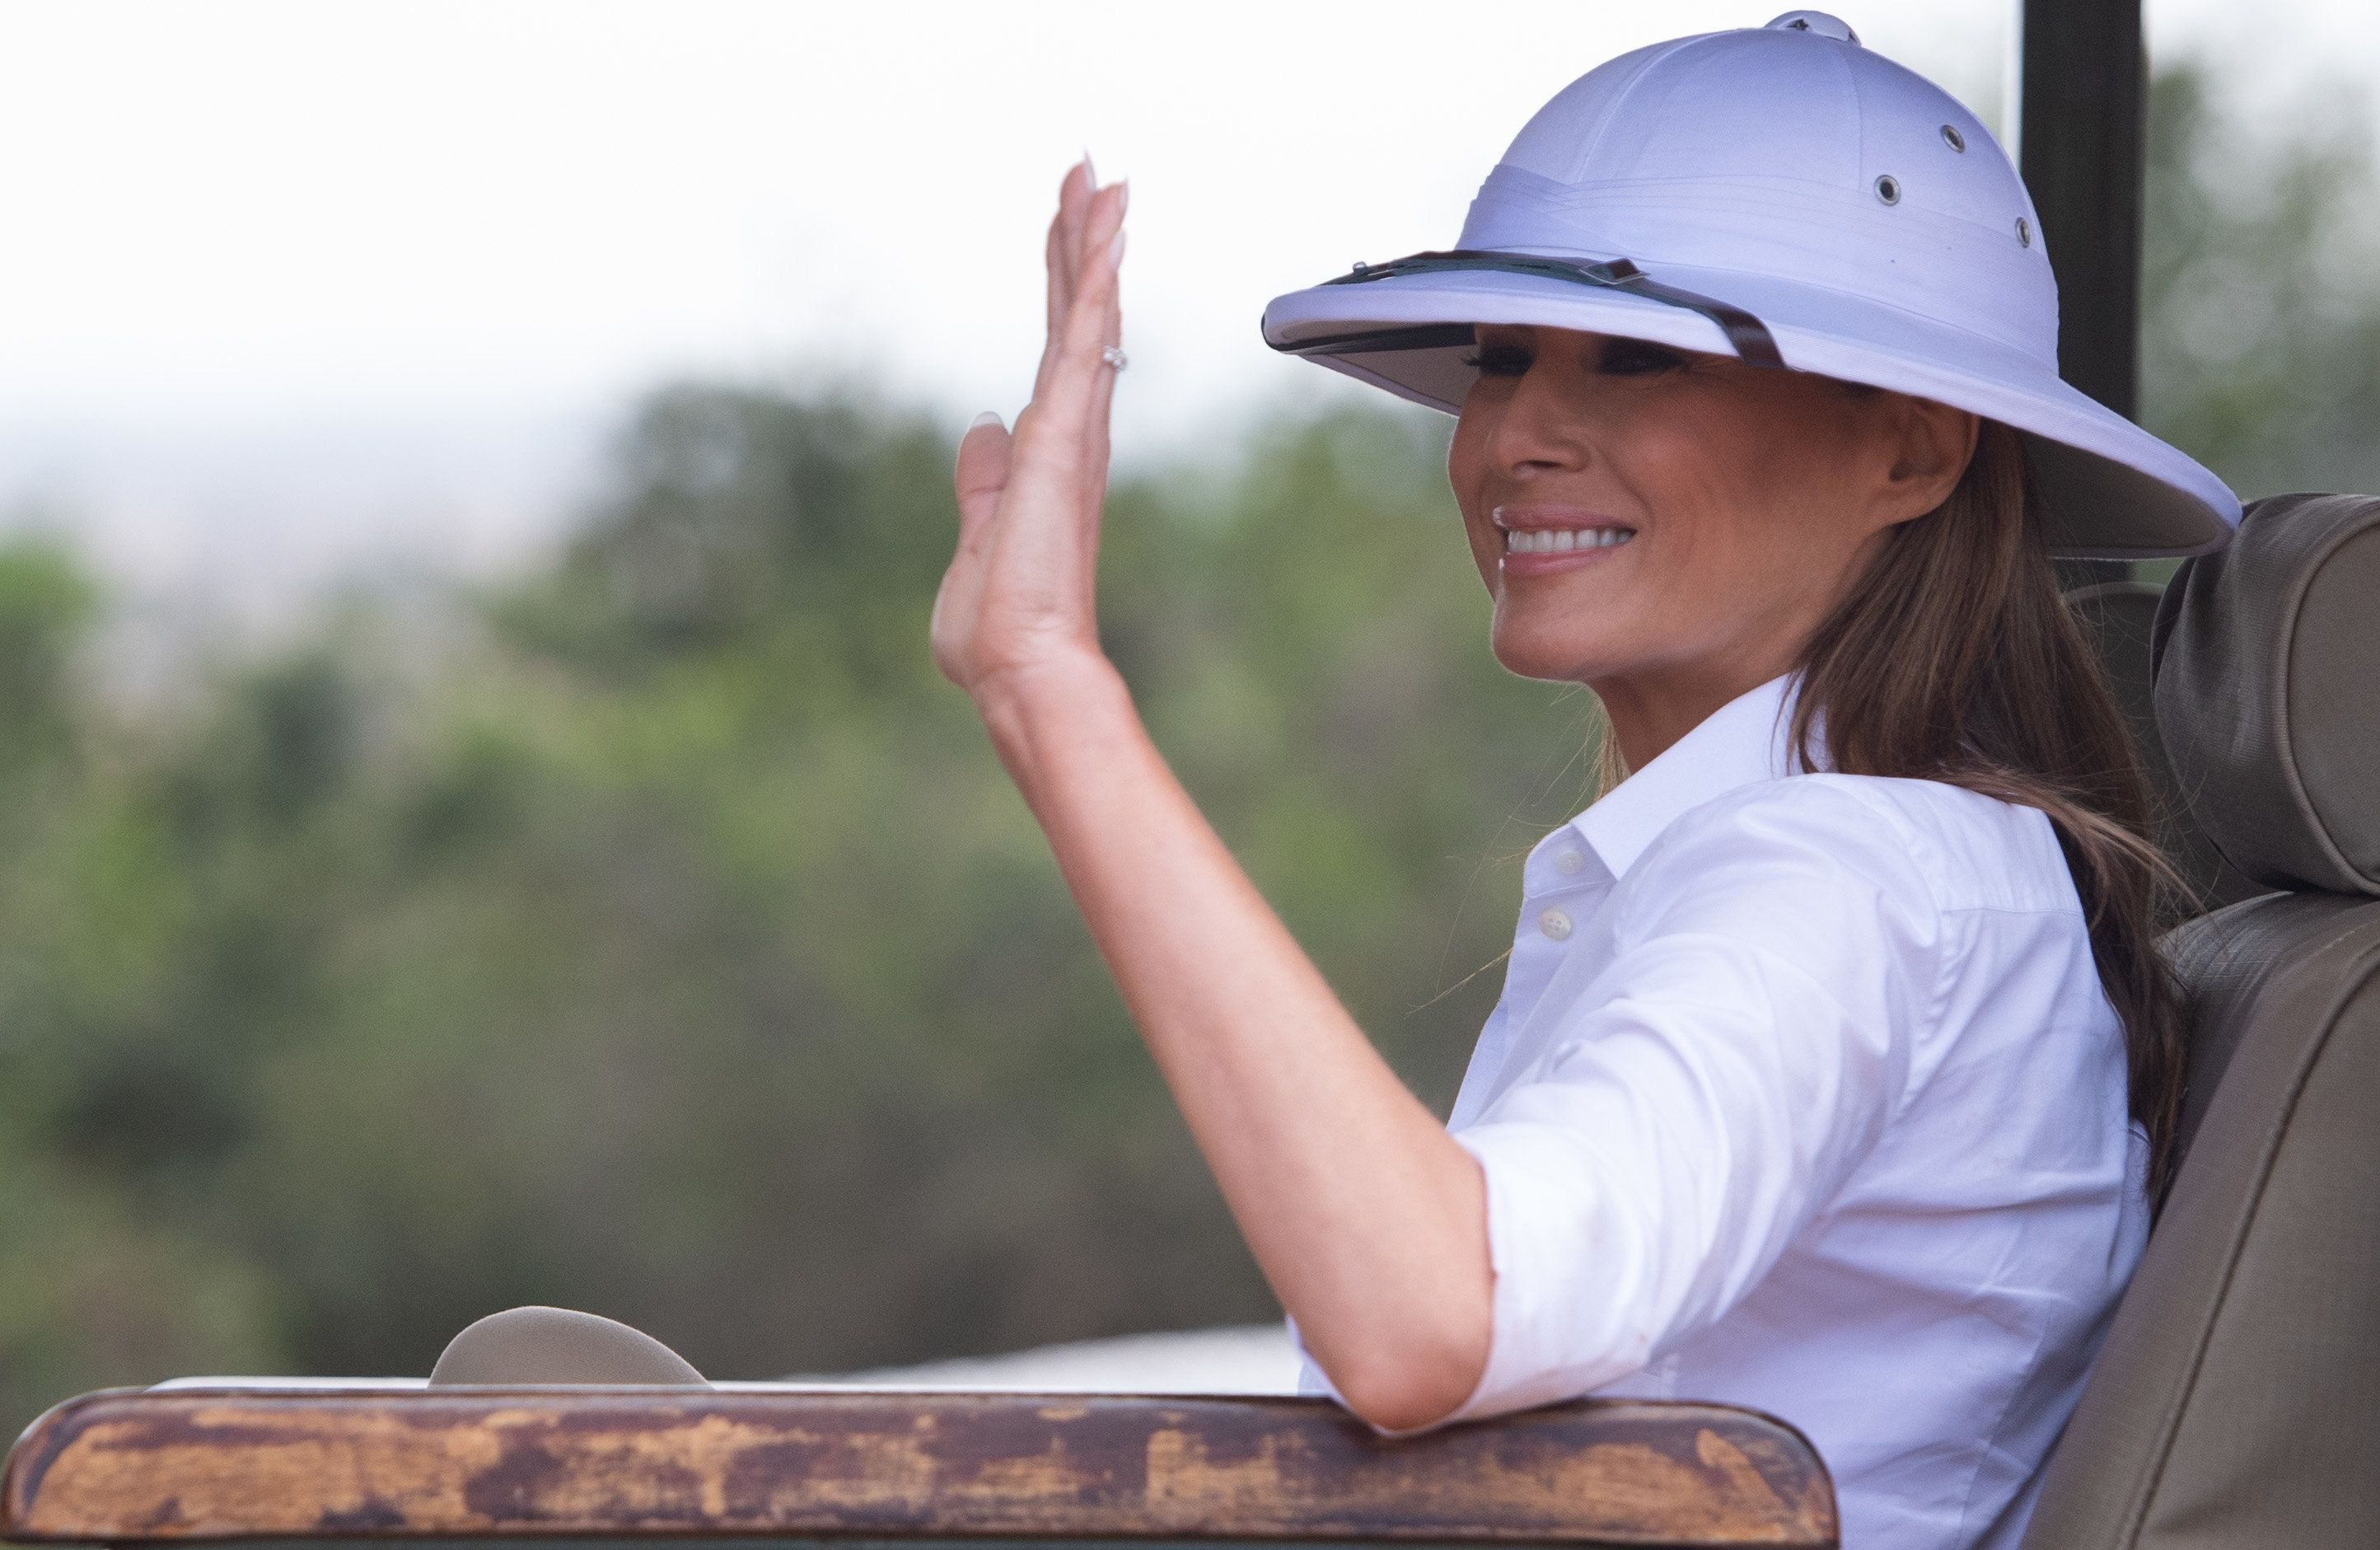 TOPSHOT - US First Lady Melania Trump waves as she travels in a vehicle while on a safari at The Nairobi National Park in Nairobi on October 5, 2018, as she pays a one day visit to the country during her solo tour of Africa promoting her children's welfare programme. (Photo by SAUL LOEB / AFP)        (Photo credit should read SAUL LOEB/AFP/Getty Images)